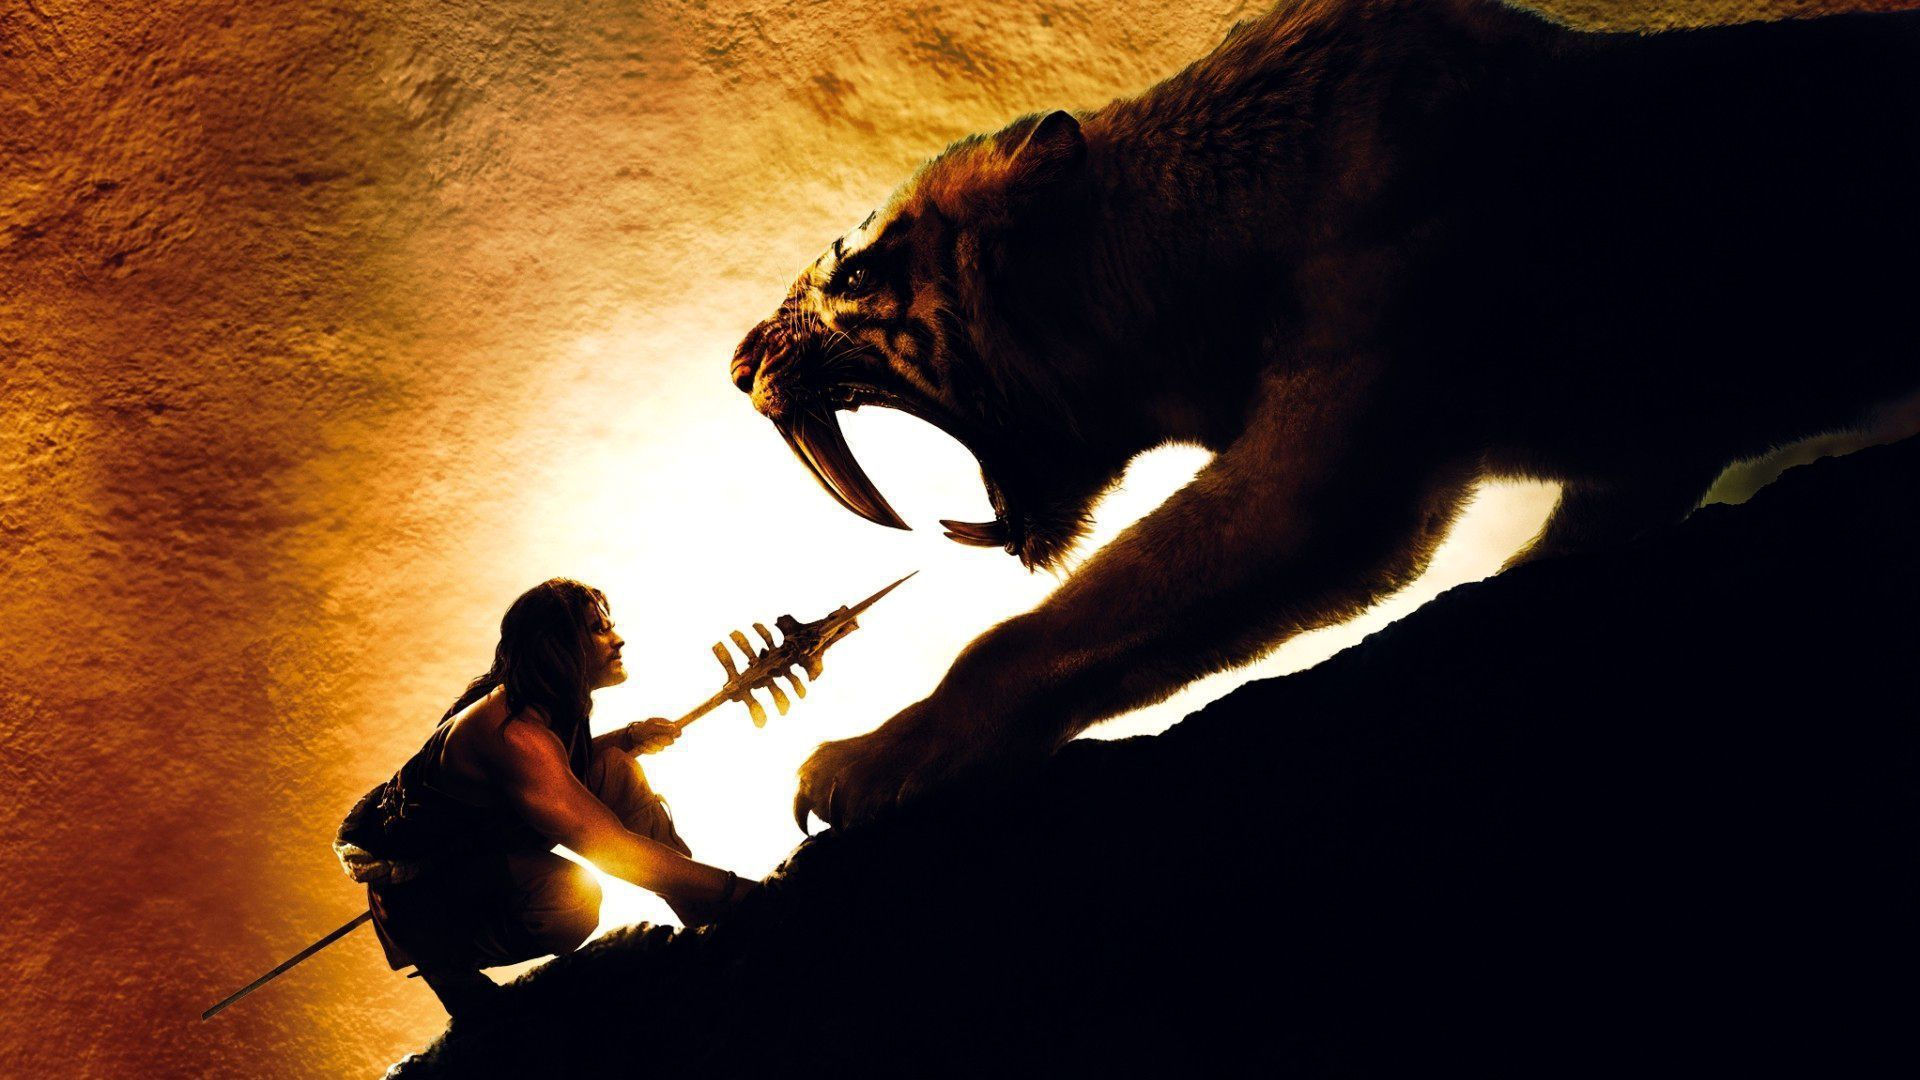 10,000 BC High Quality Wallpapers